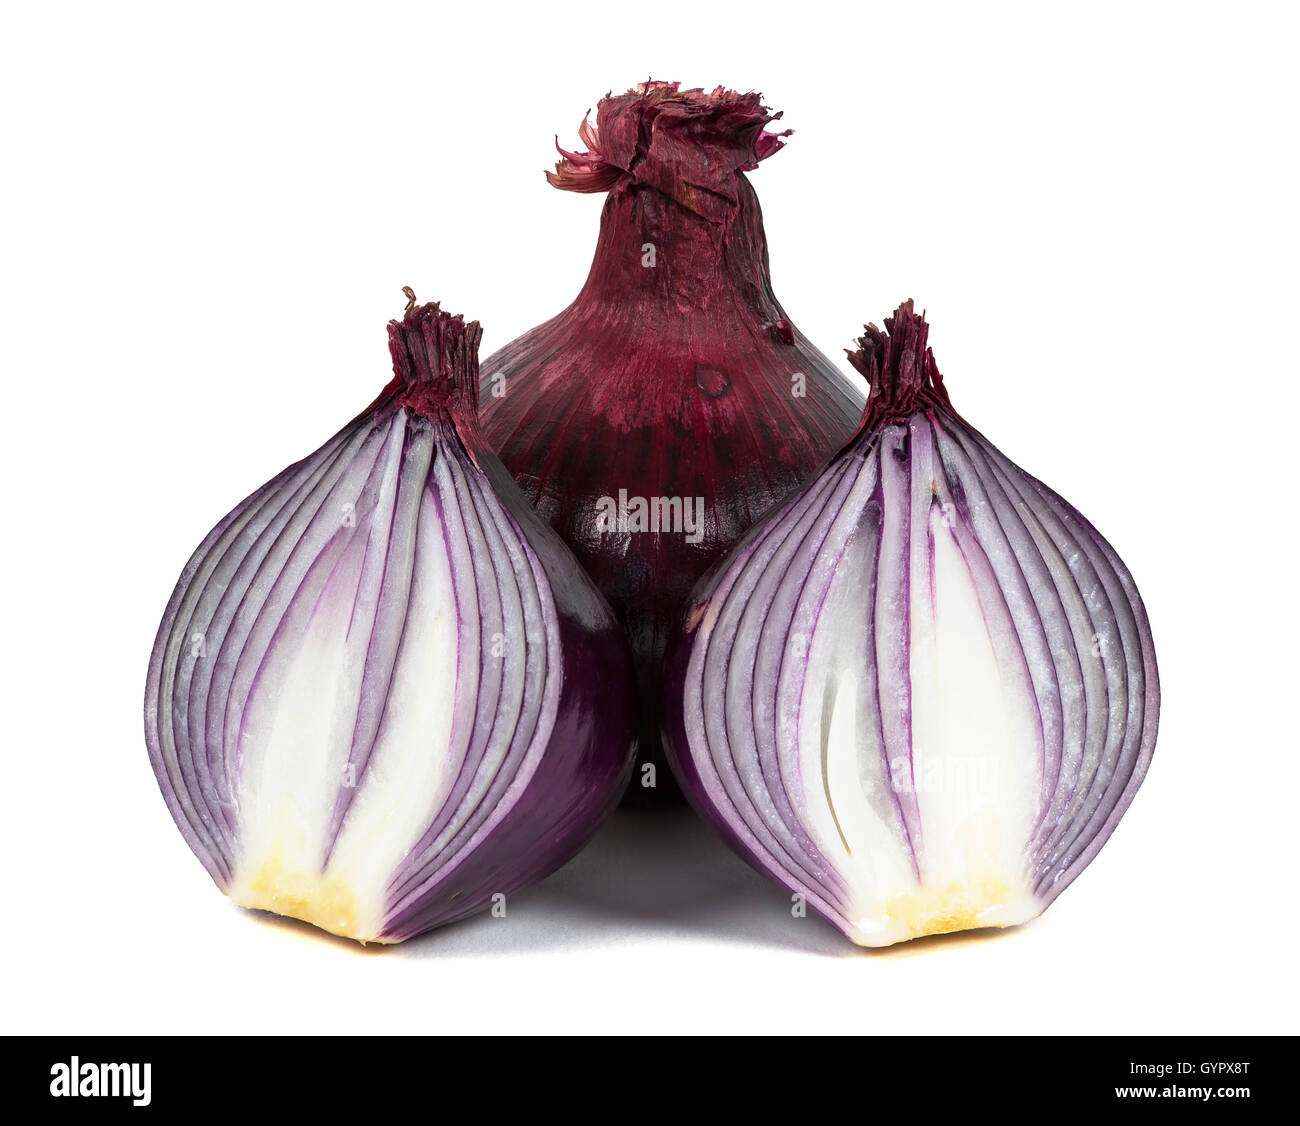 Red onions isolated on white background with clipping path - Stock Image